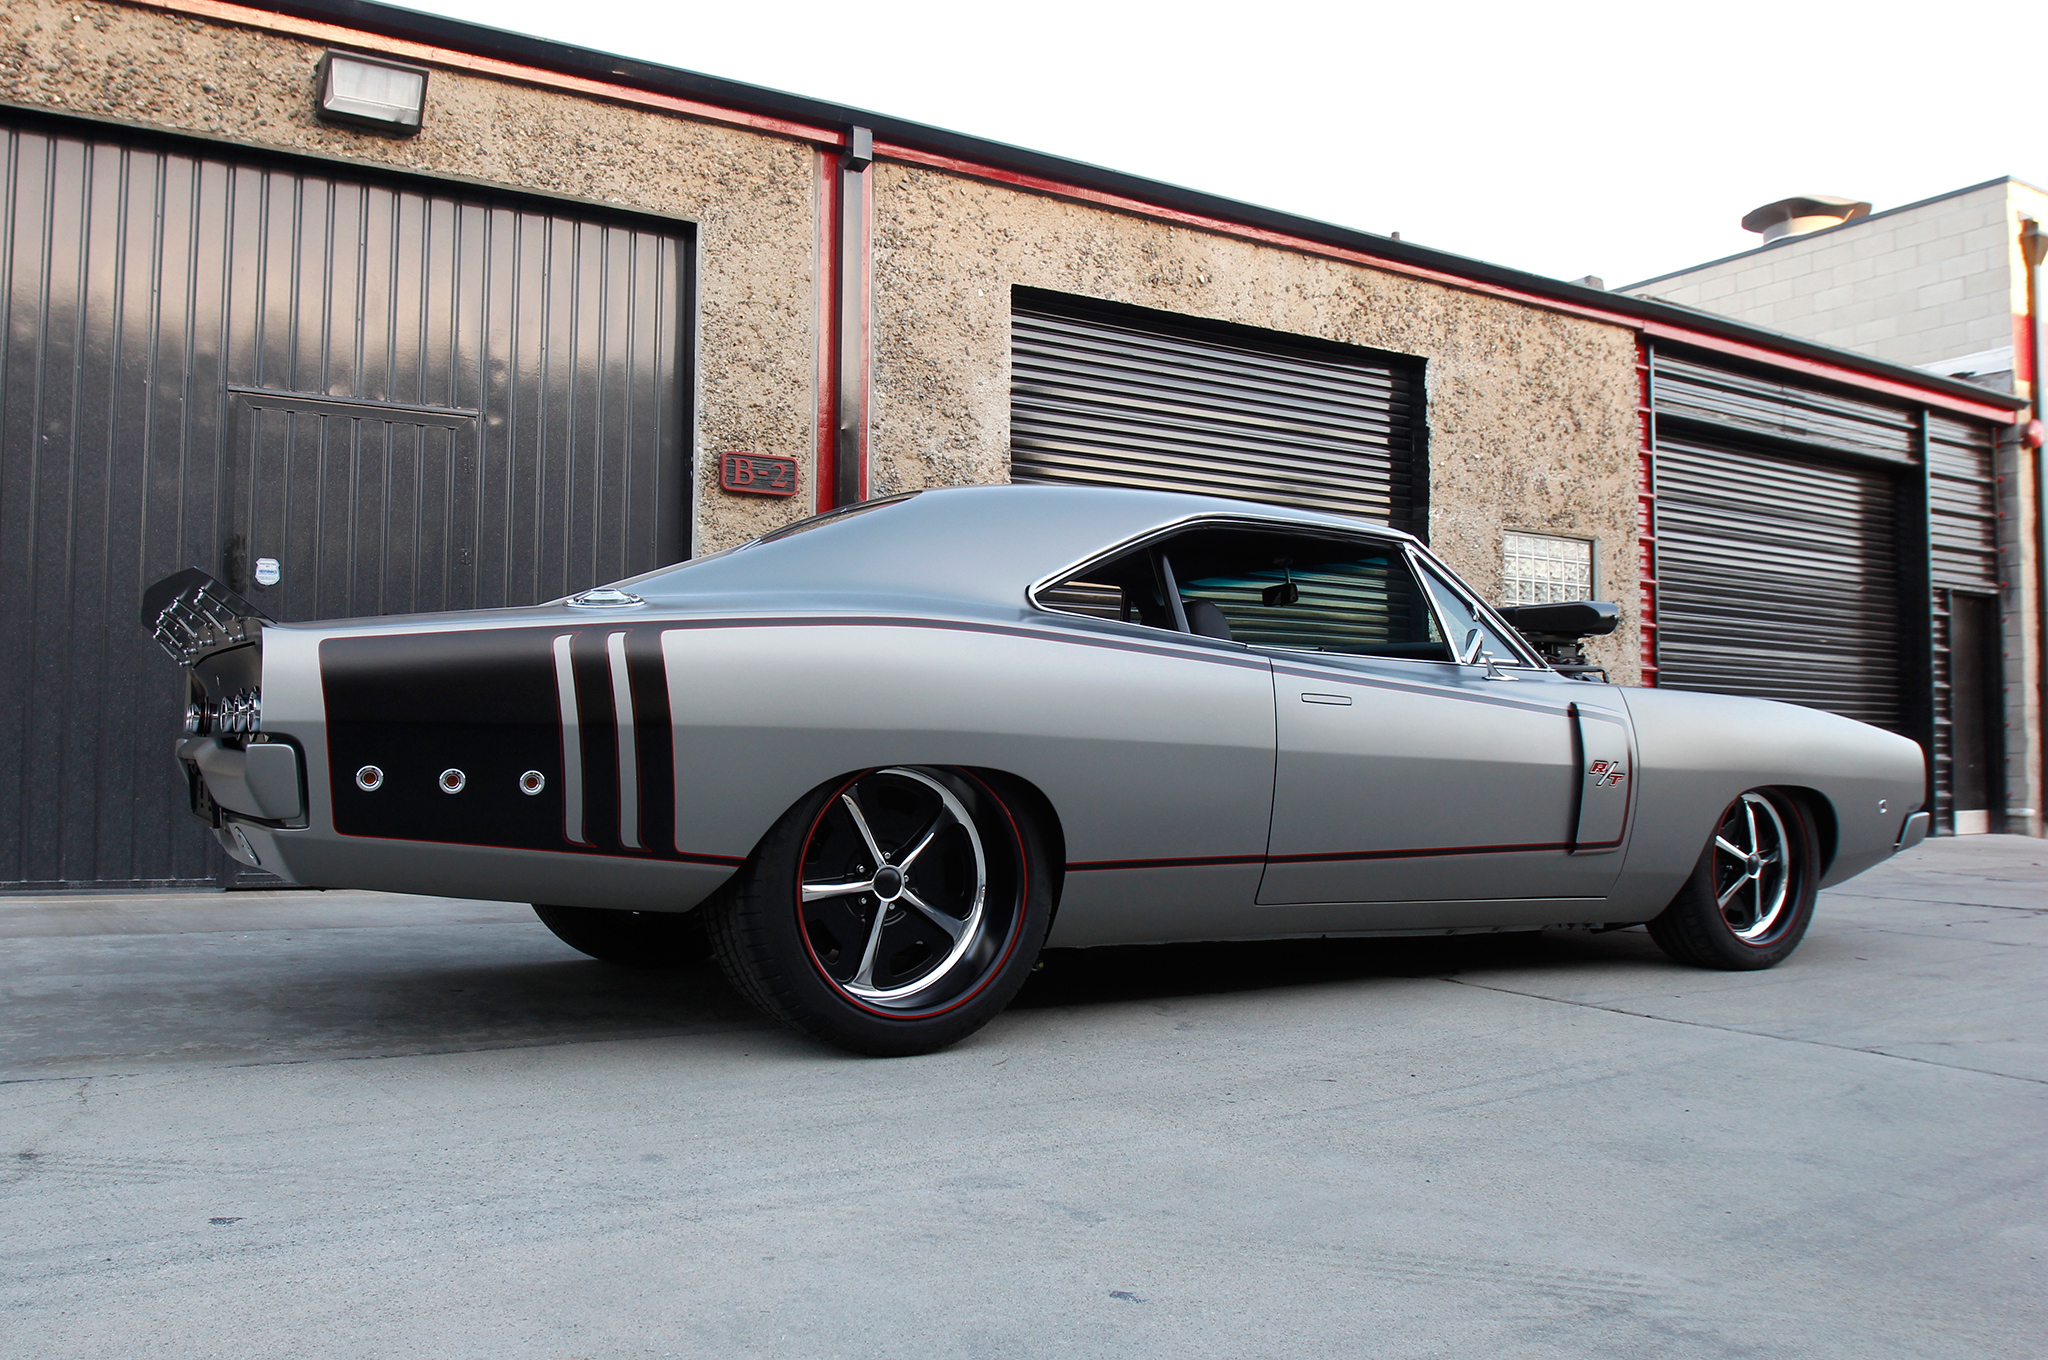 Peter Sagan Builds The 1970 Dodge Charger Of His Dreams Hot Rod